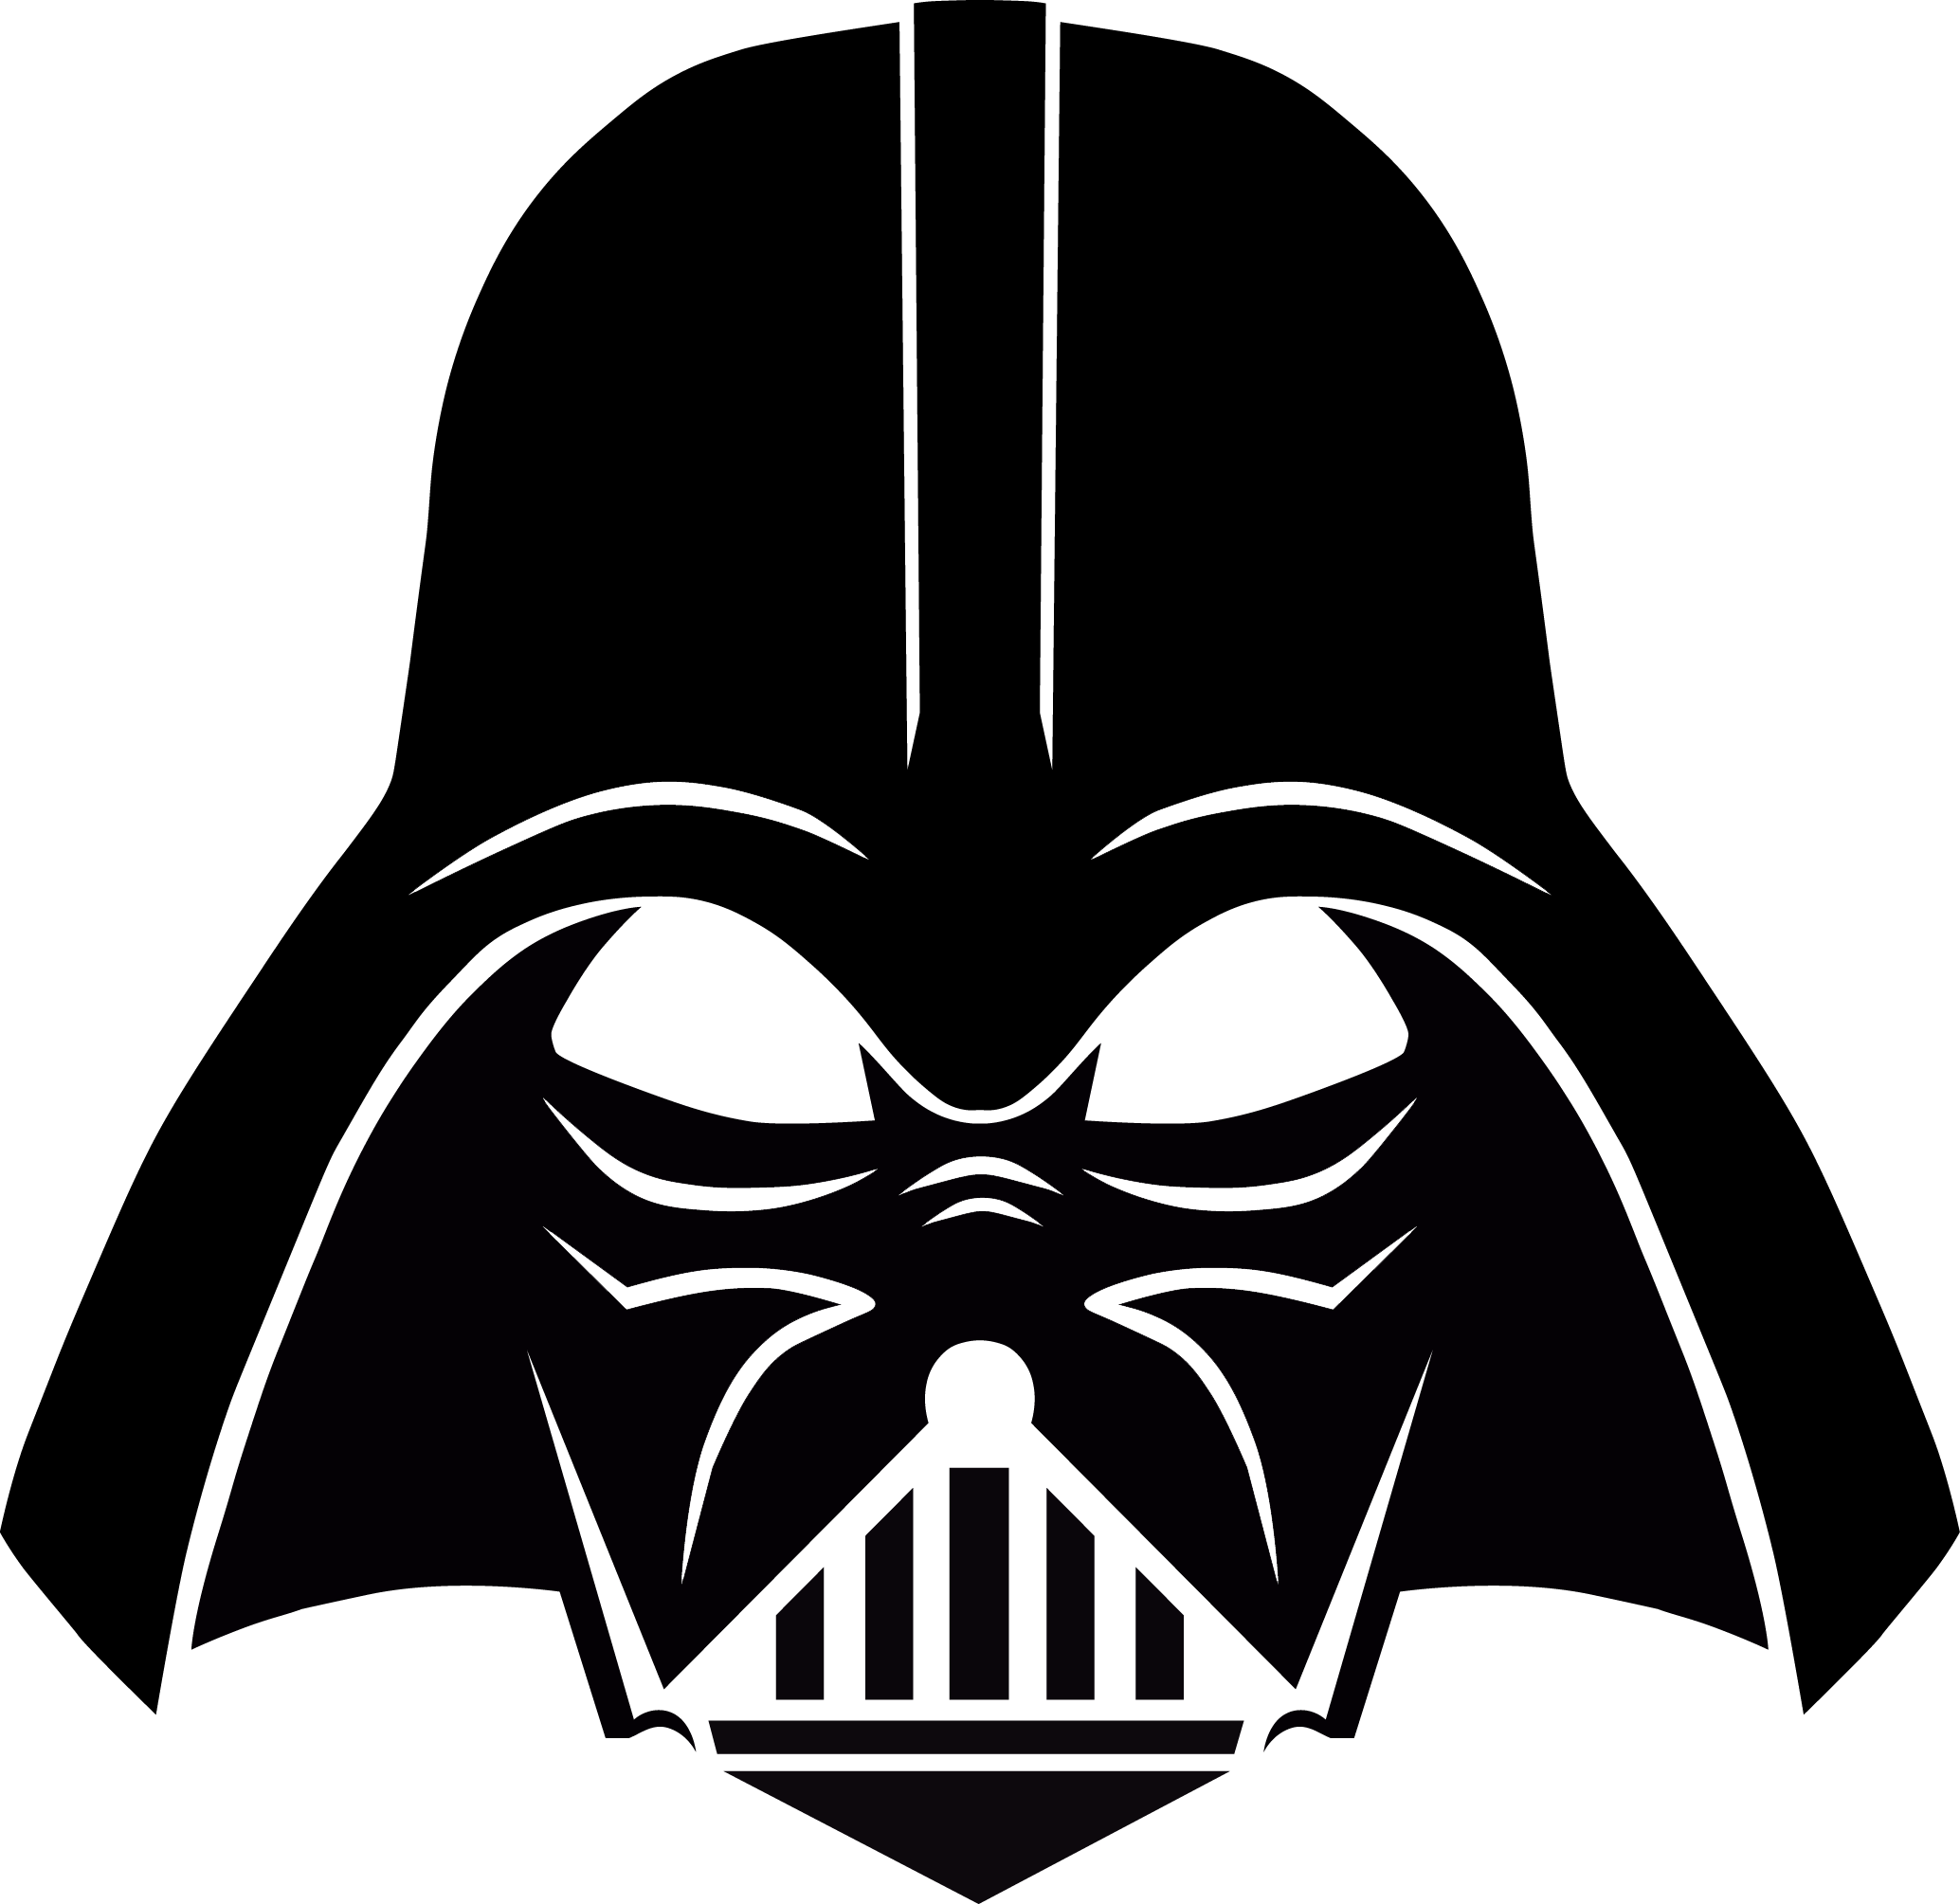 Darth vader outline png. Stencil free download pinterest